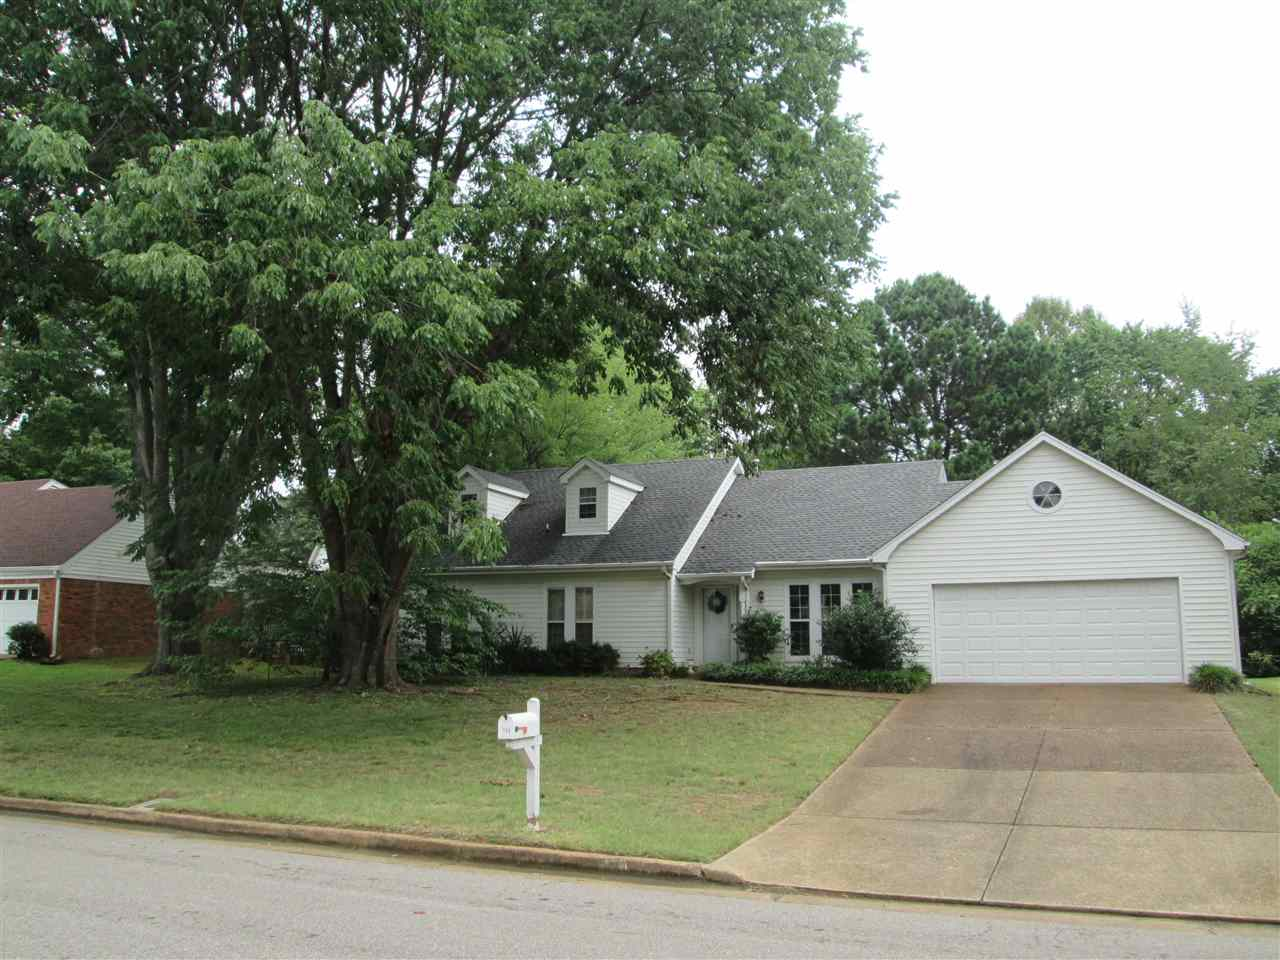 Property for sale at 134 Glaze Ave, Collierville,  TN 38017